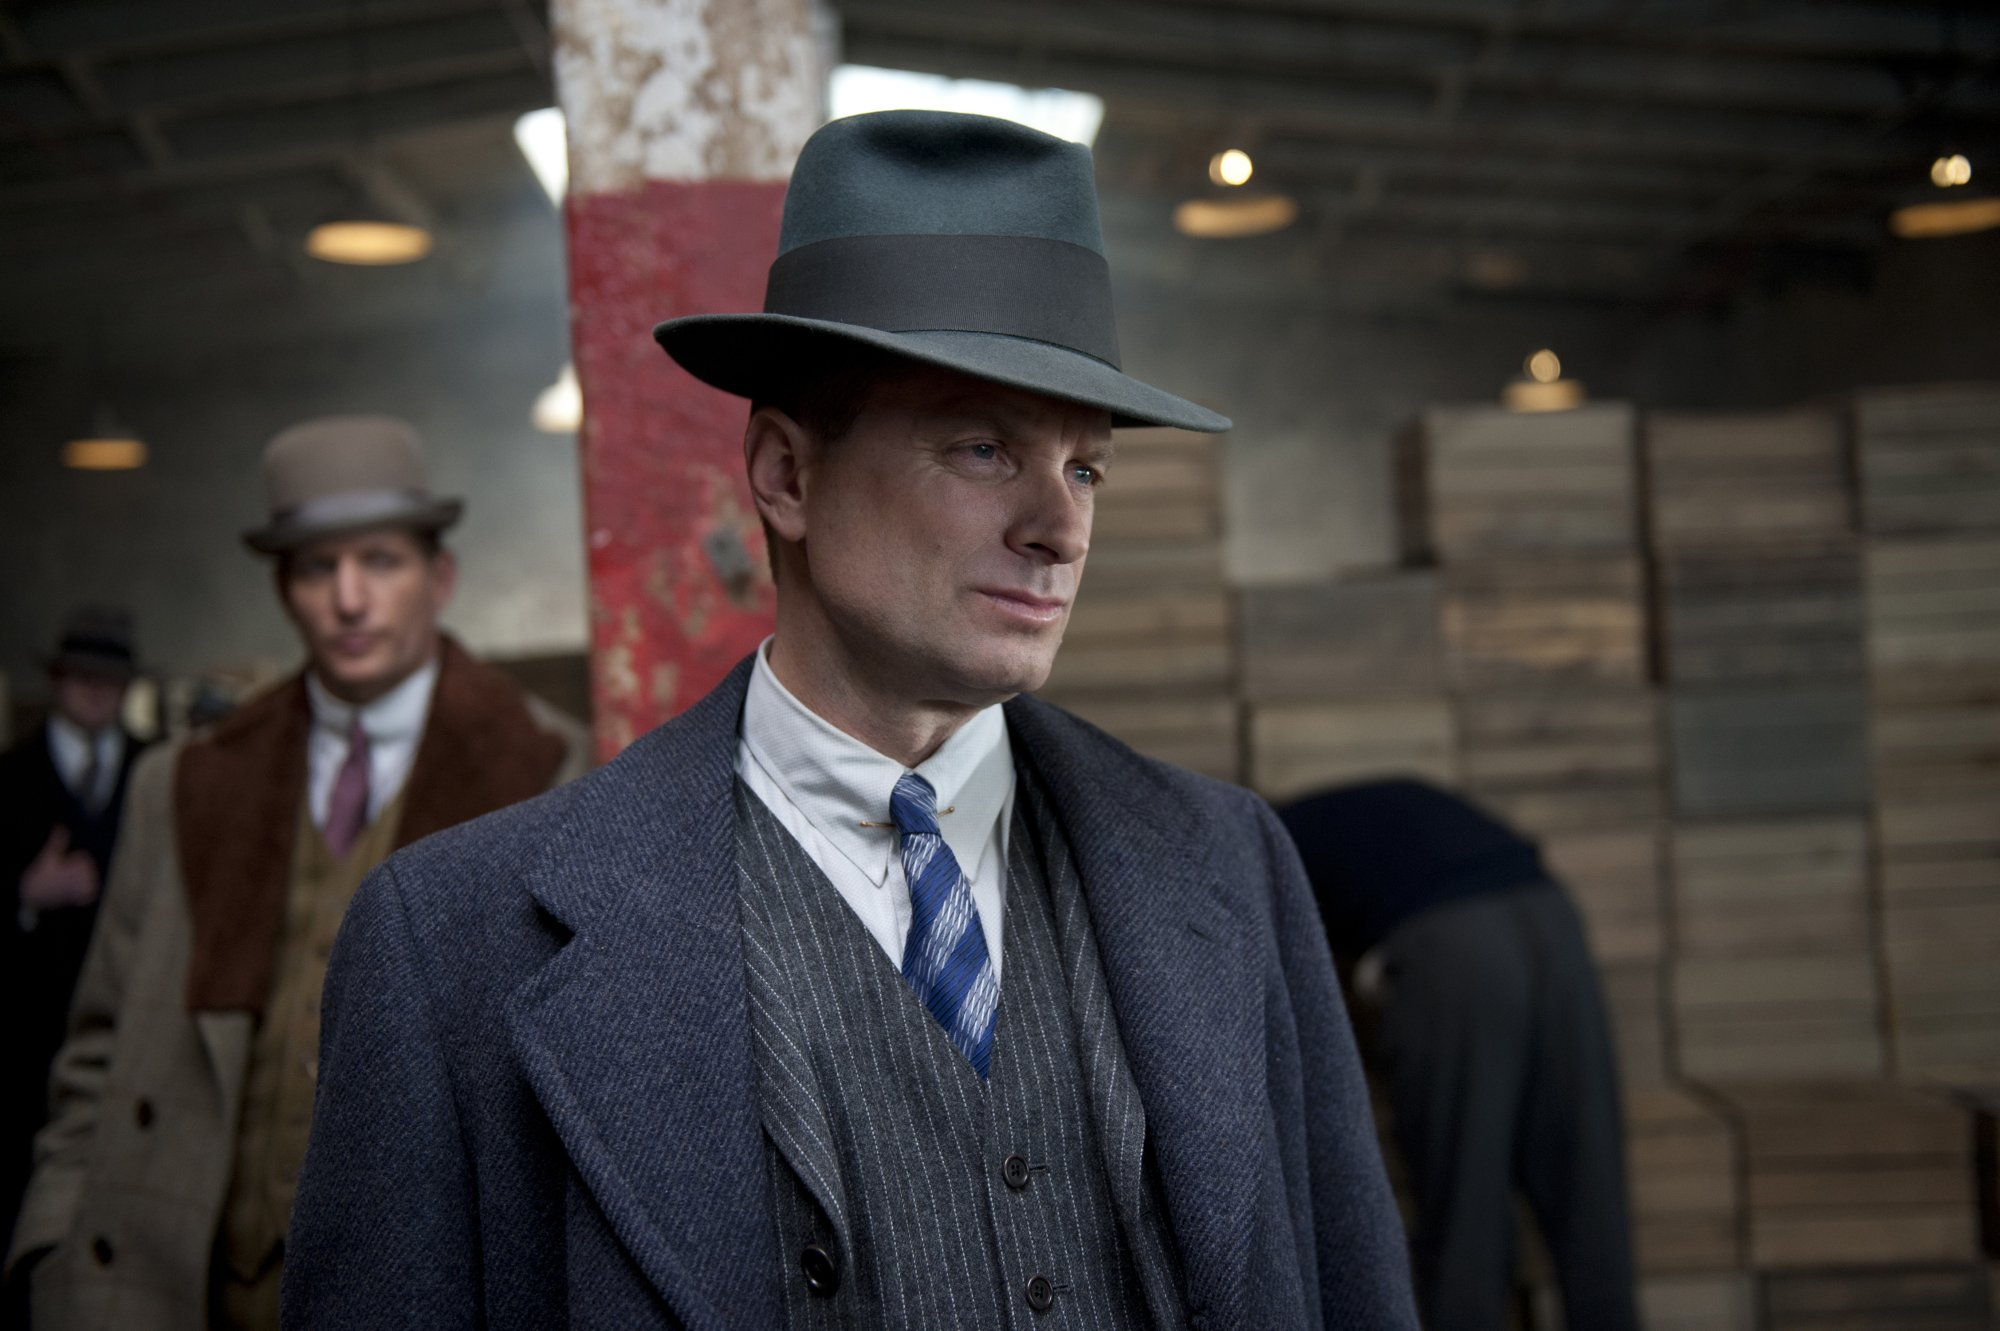 Boardwalk Empire - 04x06 - The North Star